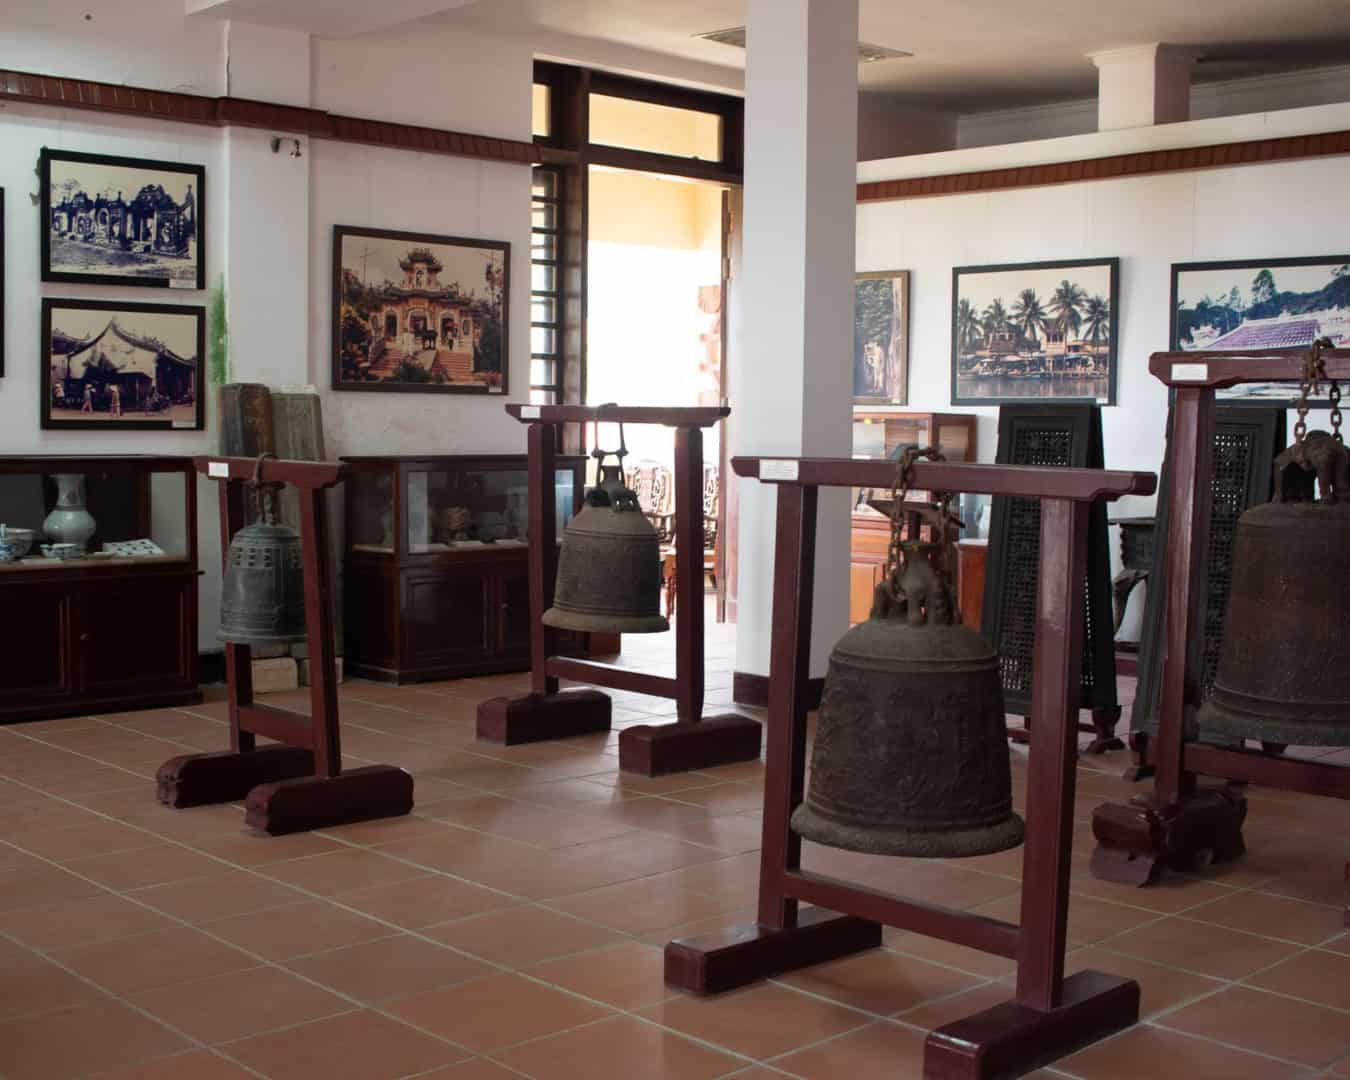 Hoi An Museum of History and Culture - Hoi An museums